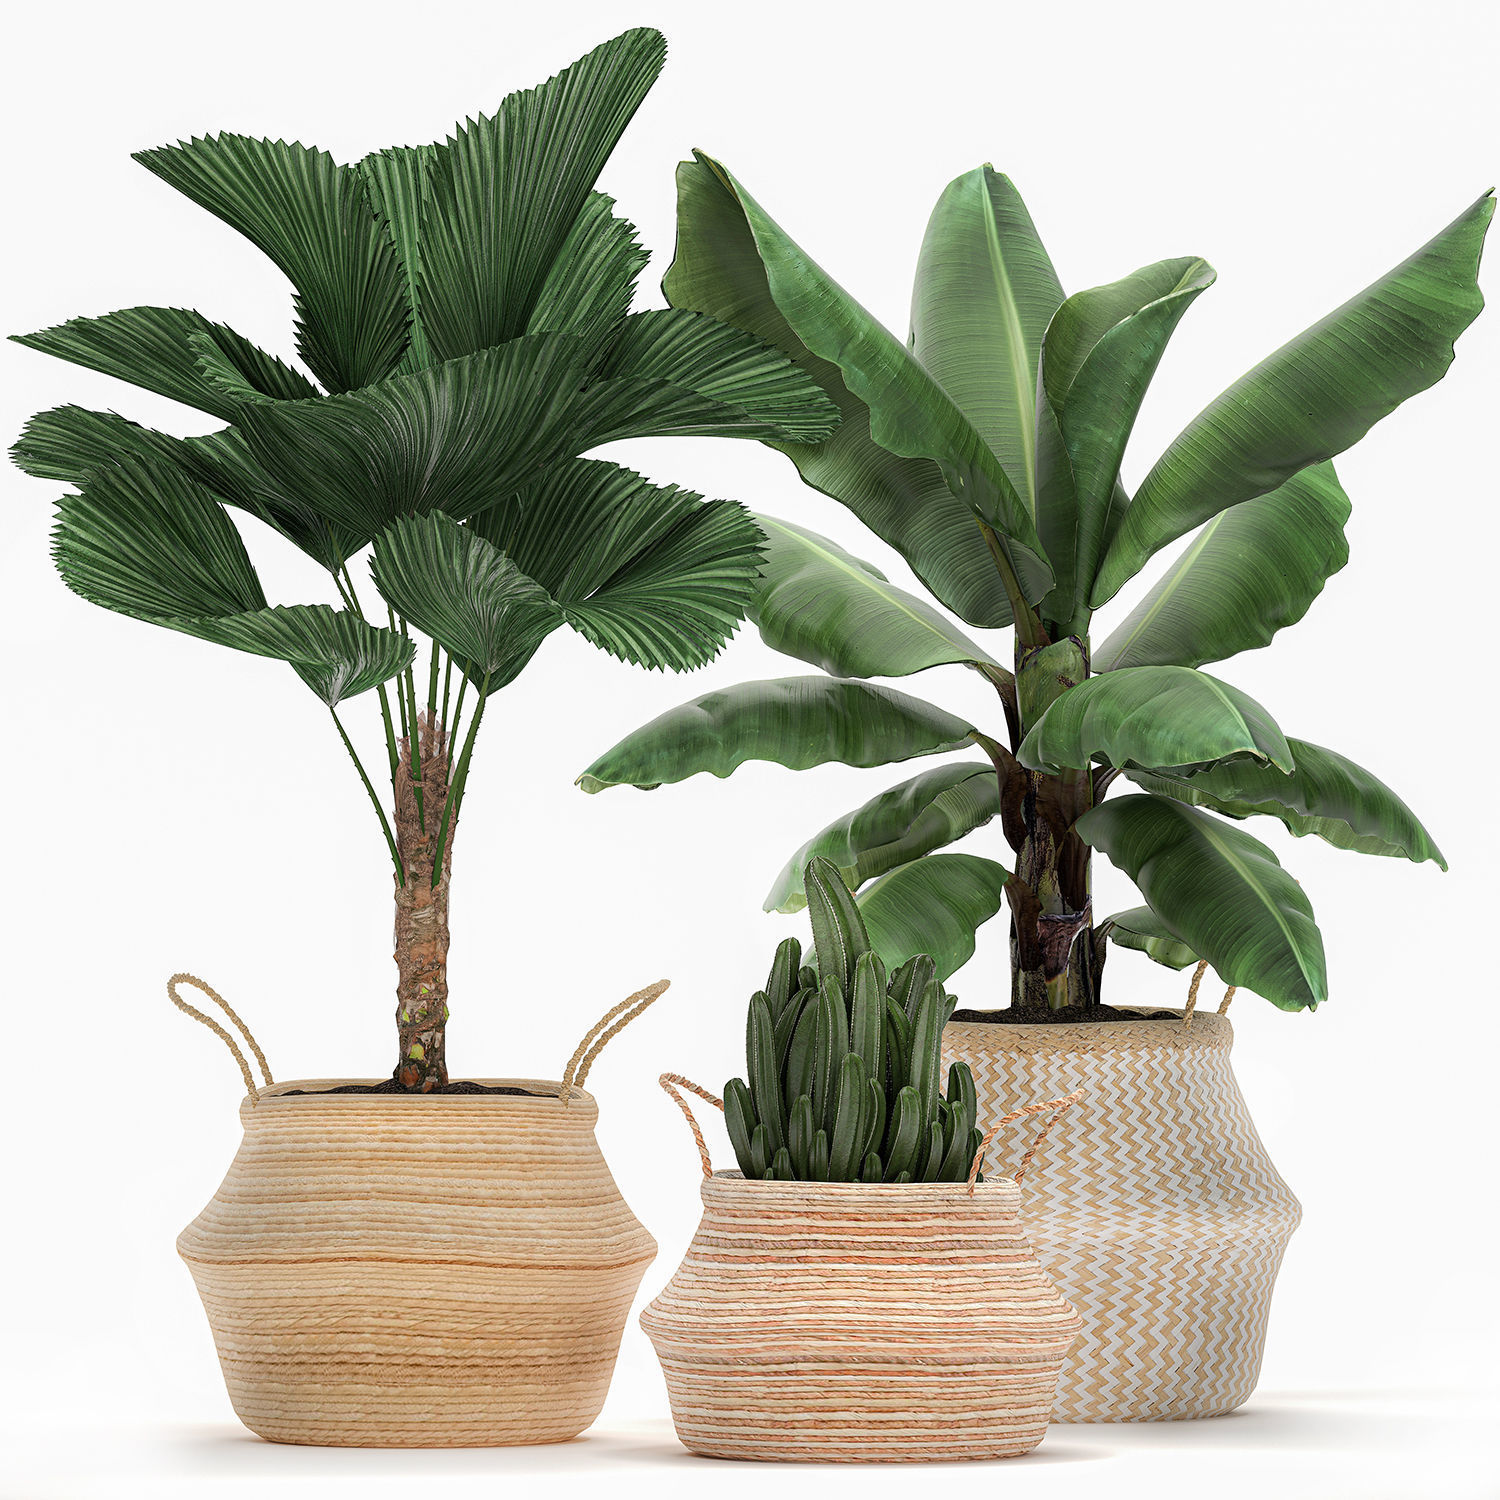 Decorative plants in flower pots for the interior 486